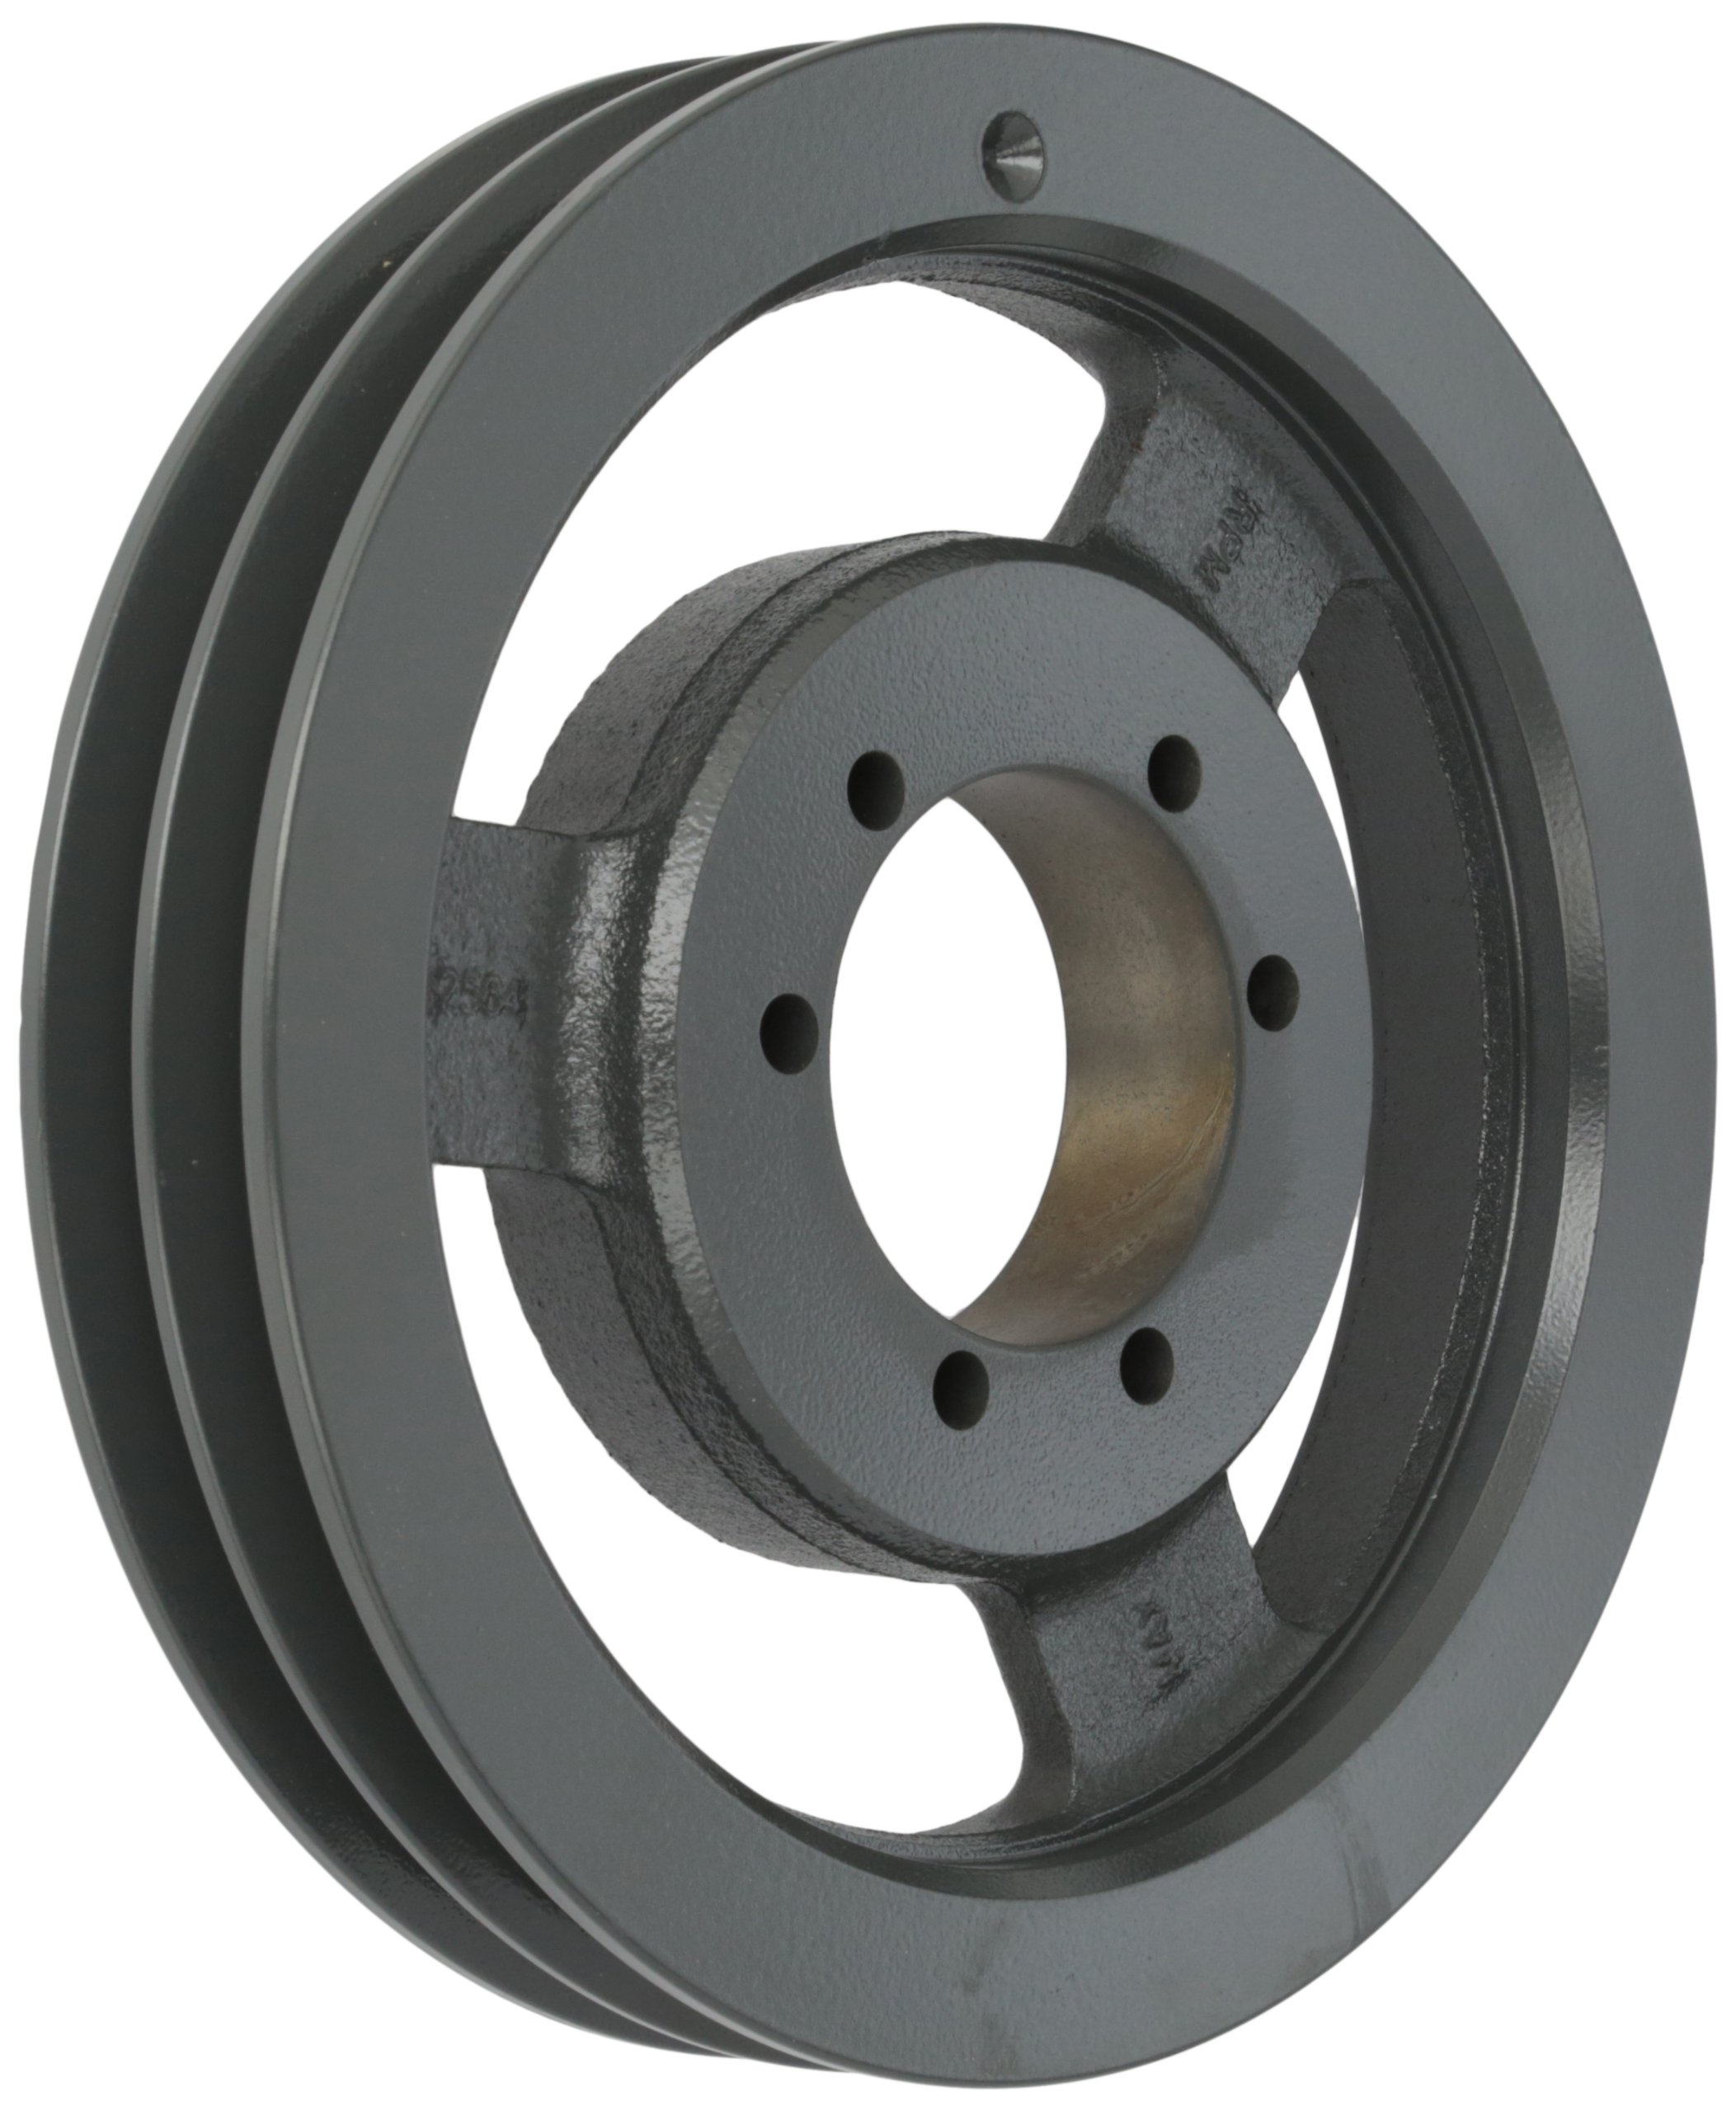 Browning 2B94SK Q-D Sheave, Cast Iron, 2 Groove, A or B Belt, Uses SK Bushing